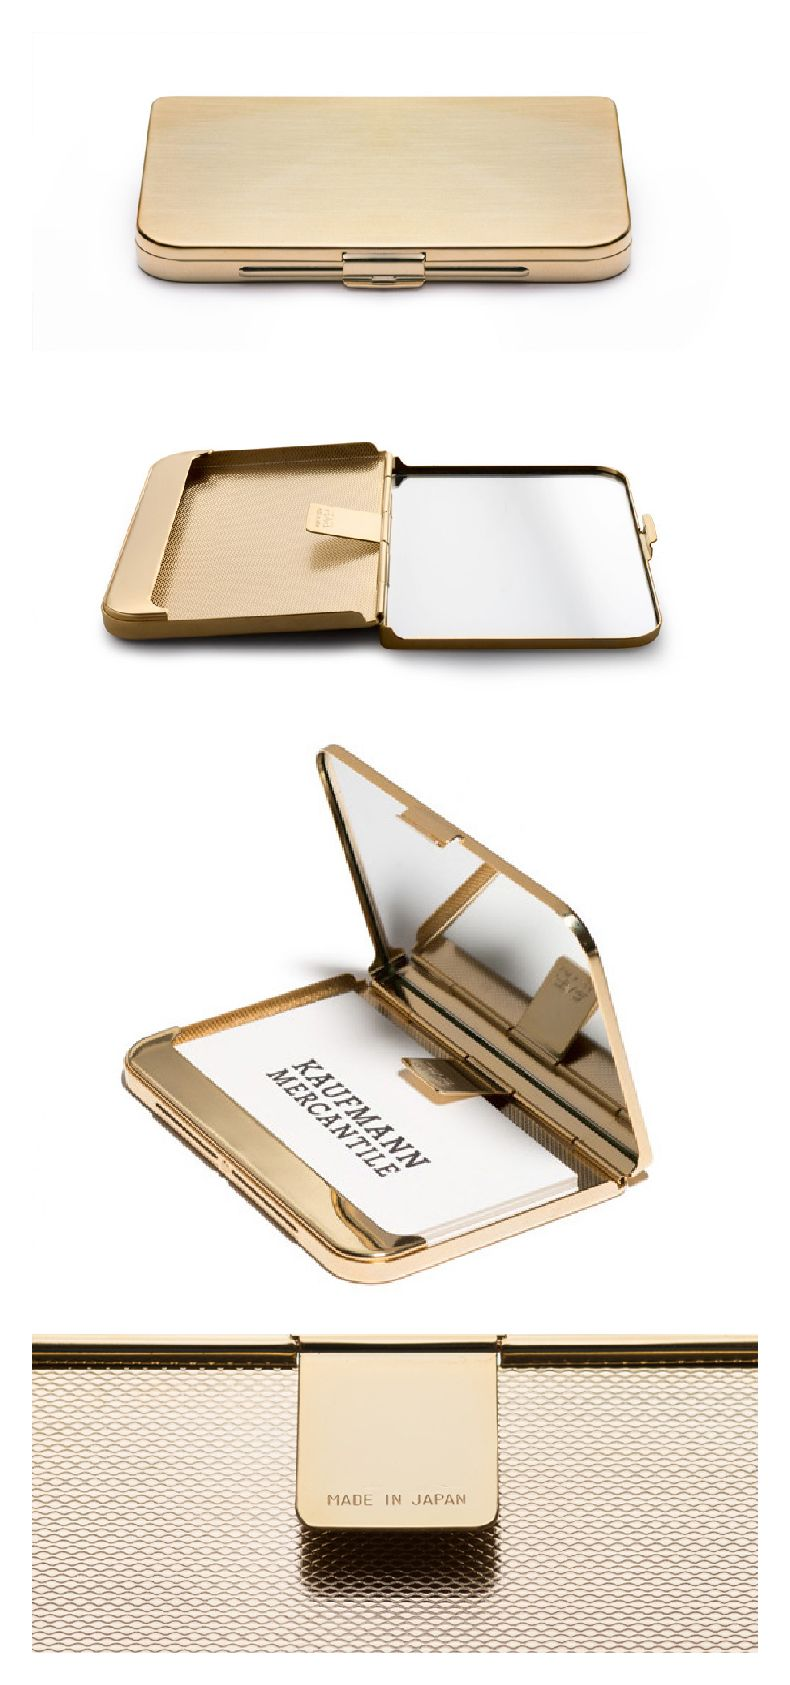 Satin-Finish Brass Business Card Holder $48 | accessories ...